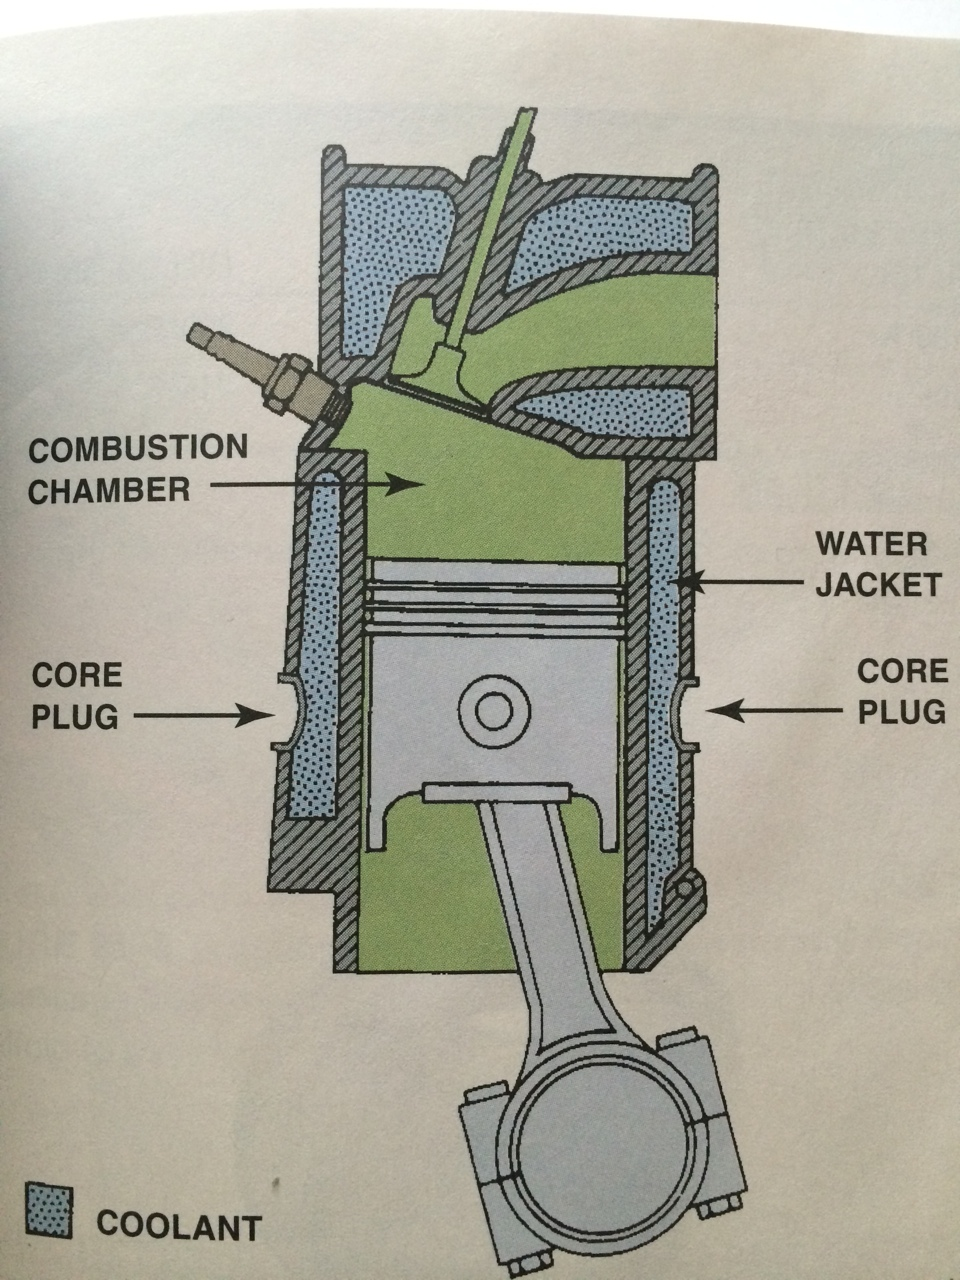 Engine Cooling System Block Water Jacket Diagram Generally When Air Becomes Trapped It Creates Pockets Where The Is Heated Up Creating Hot Spots This Can Often Be Death Of An Causing